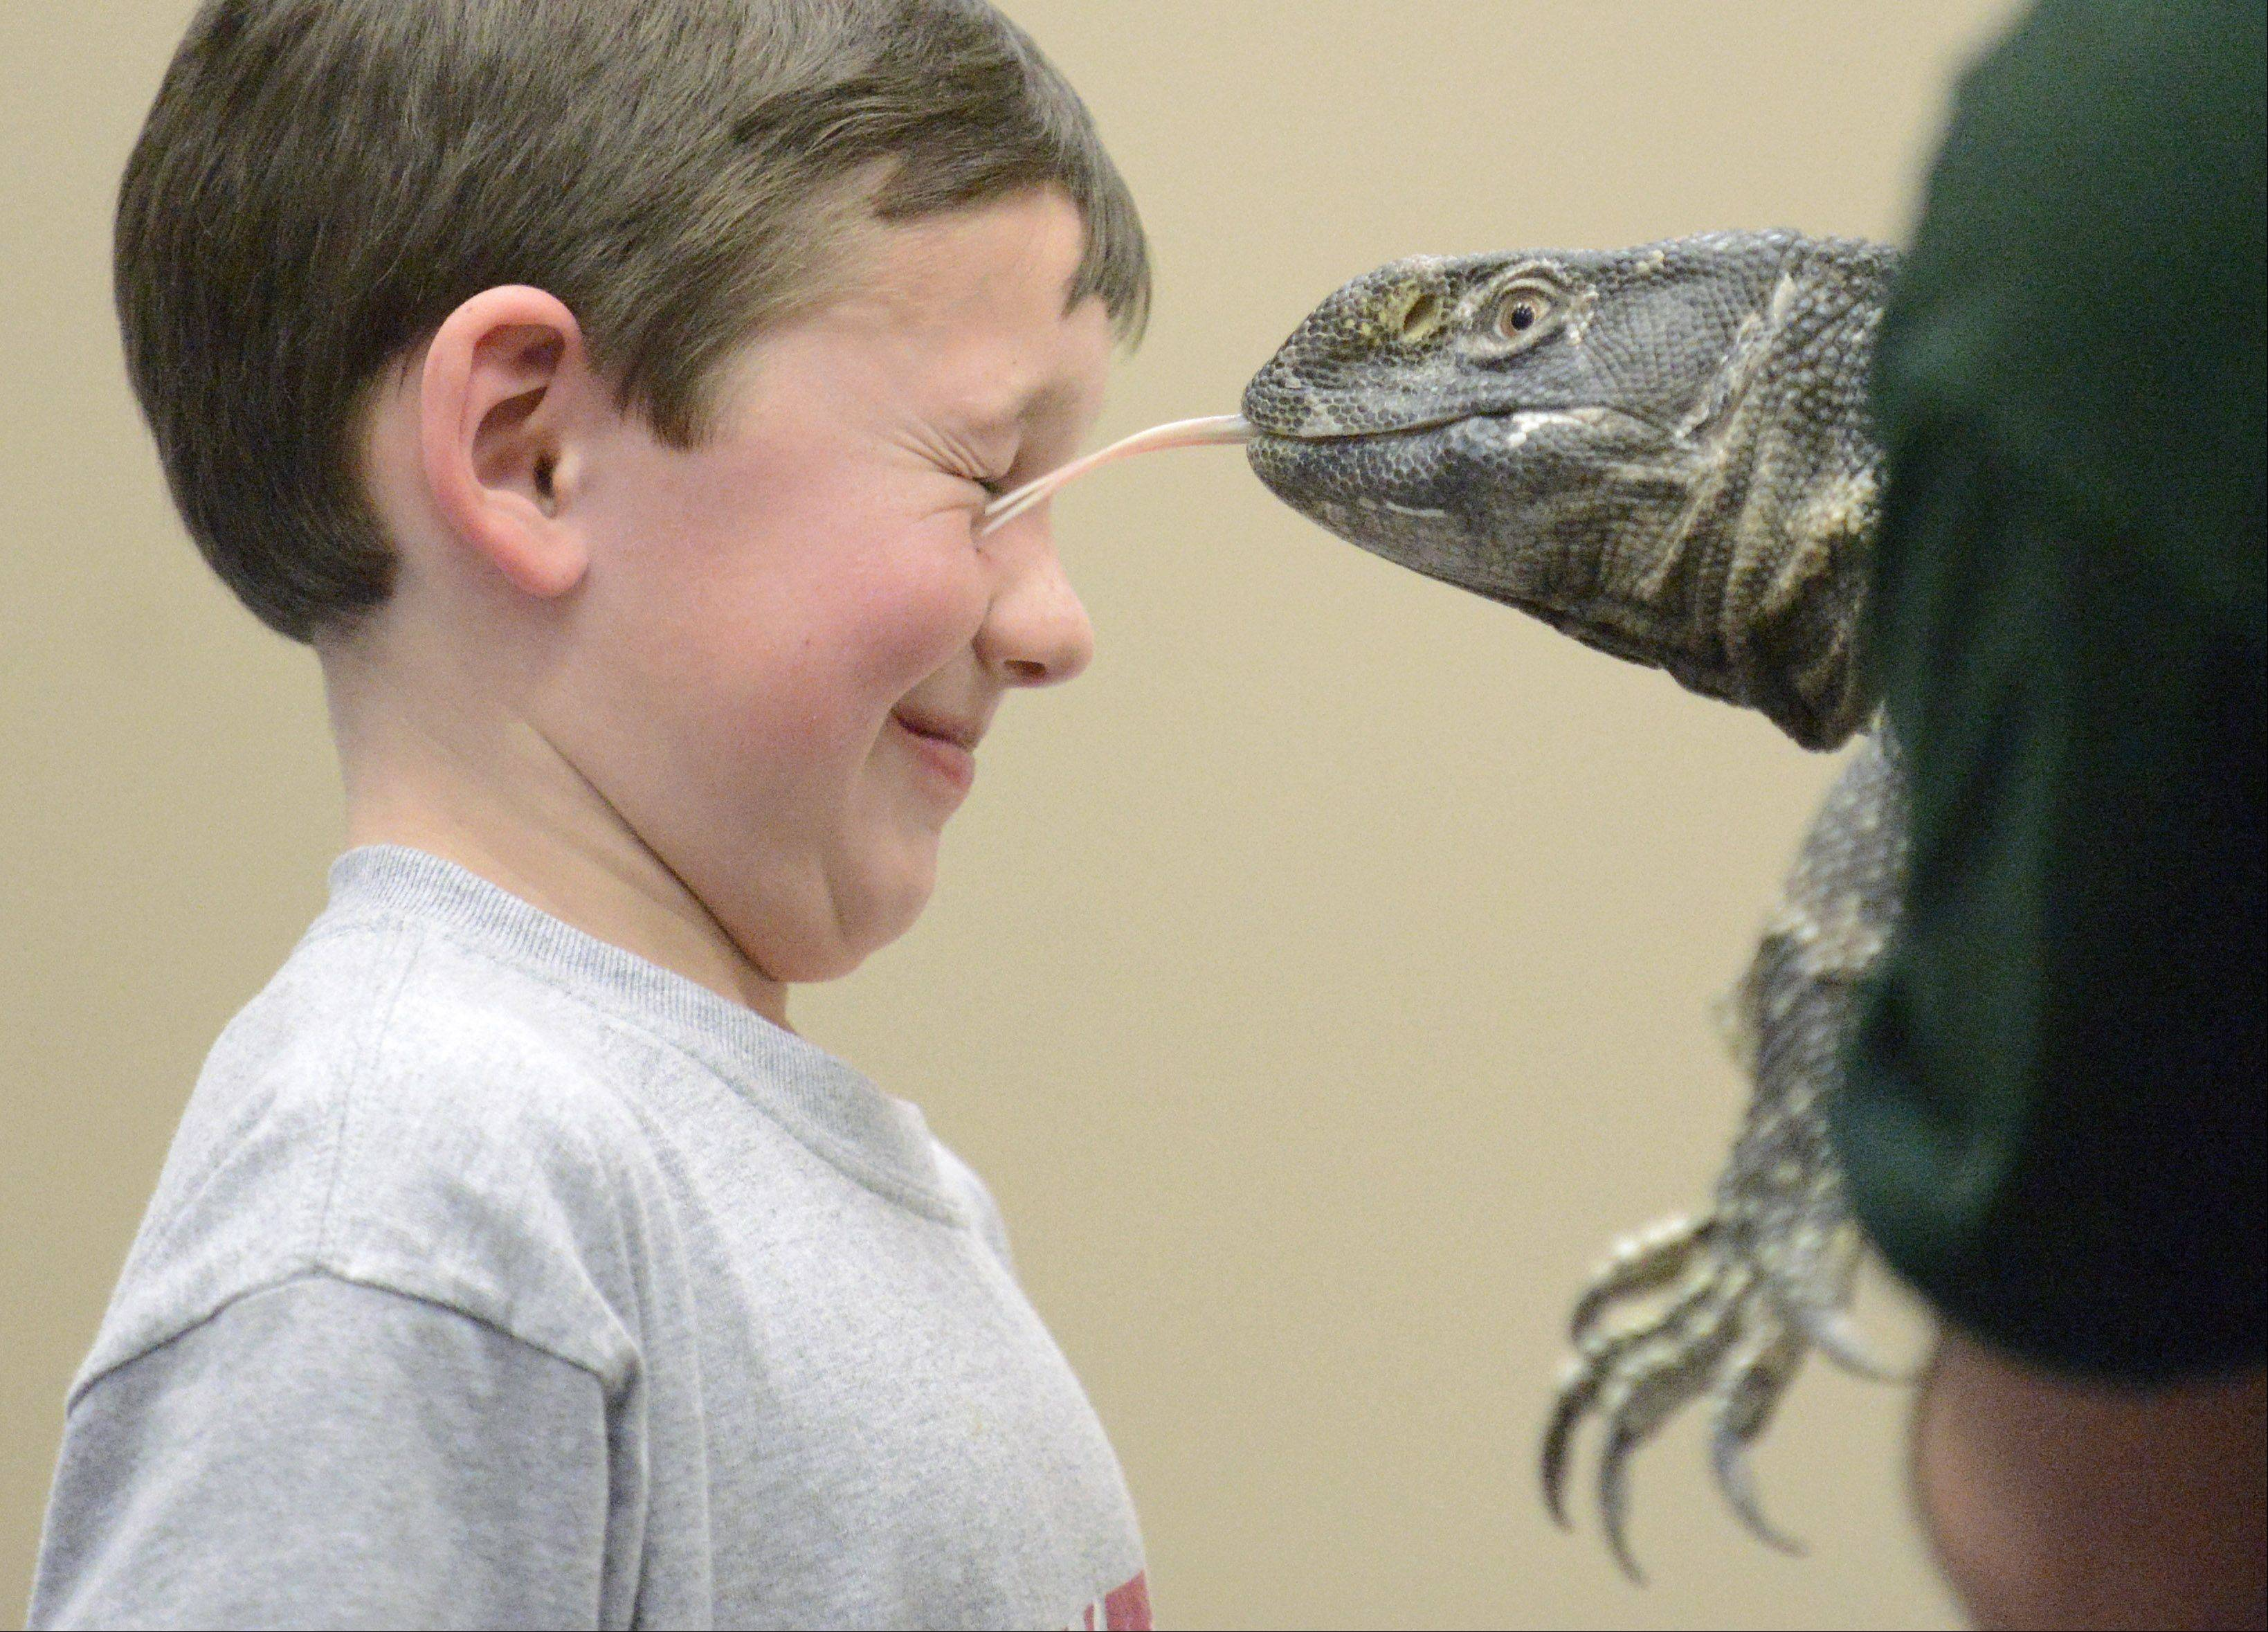 Luke O� Connor, 8, of Batavia gets a kiss from Zaney, a black throat monitor lizard during a presentation by Jim Galeno of Dave DiNaso�s Traveling World of Reptiles at the Batavia Public Library Saturday. Zaney uses his tongue to smell. The presentation was the finale of the Winter Reading Club.